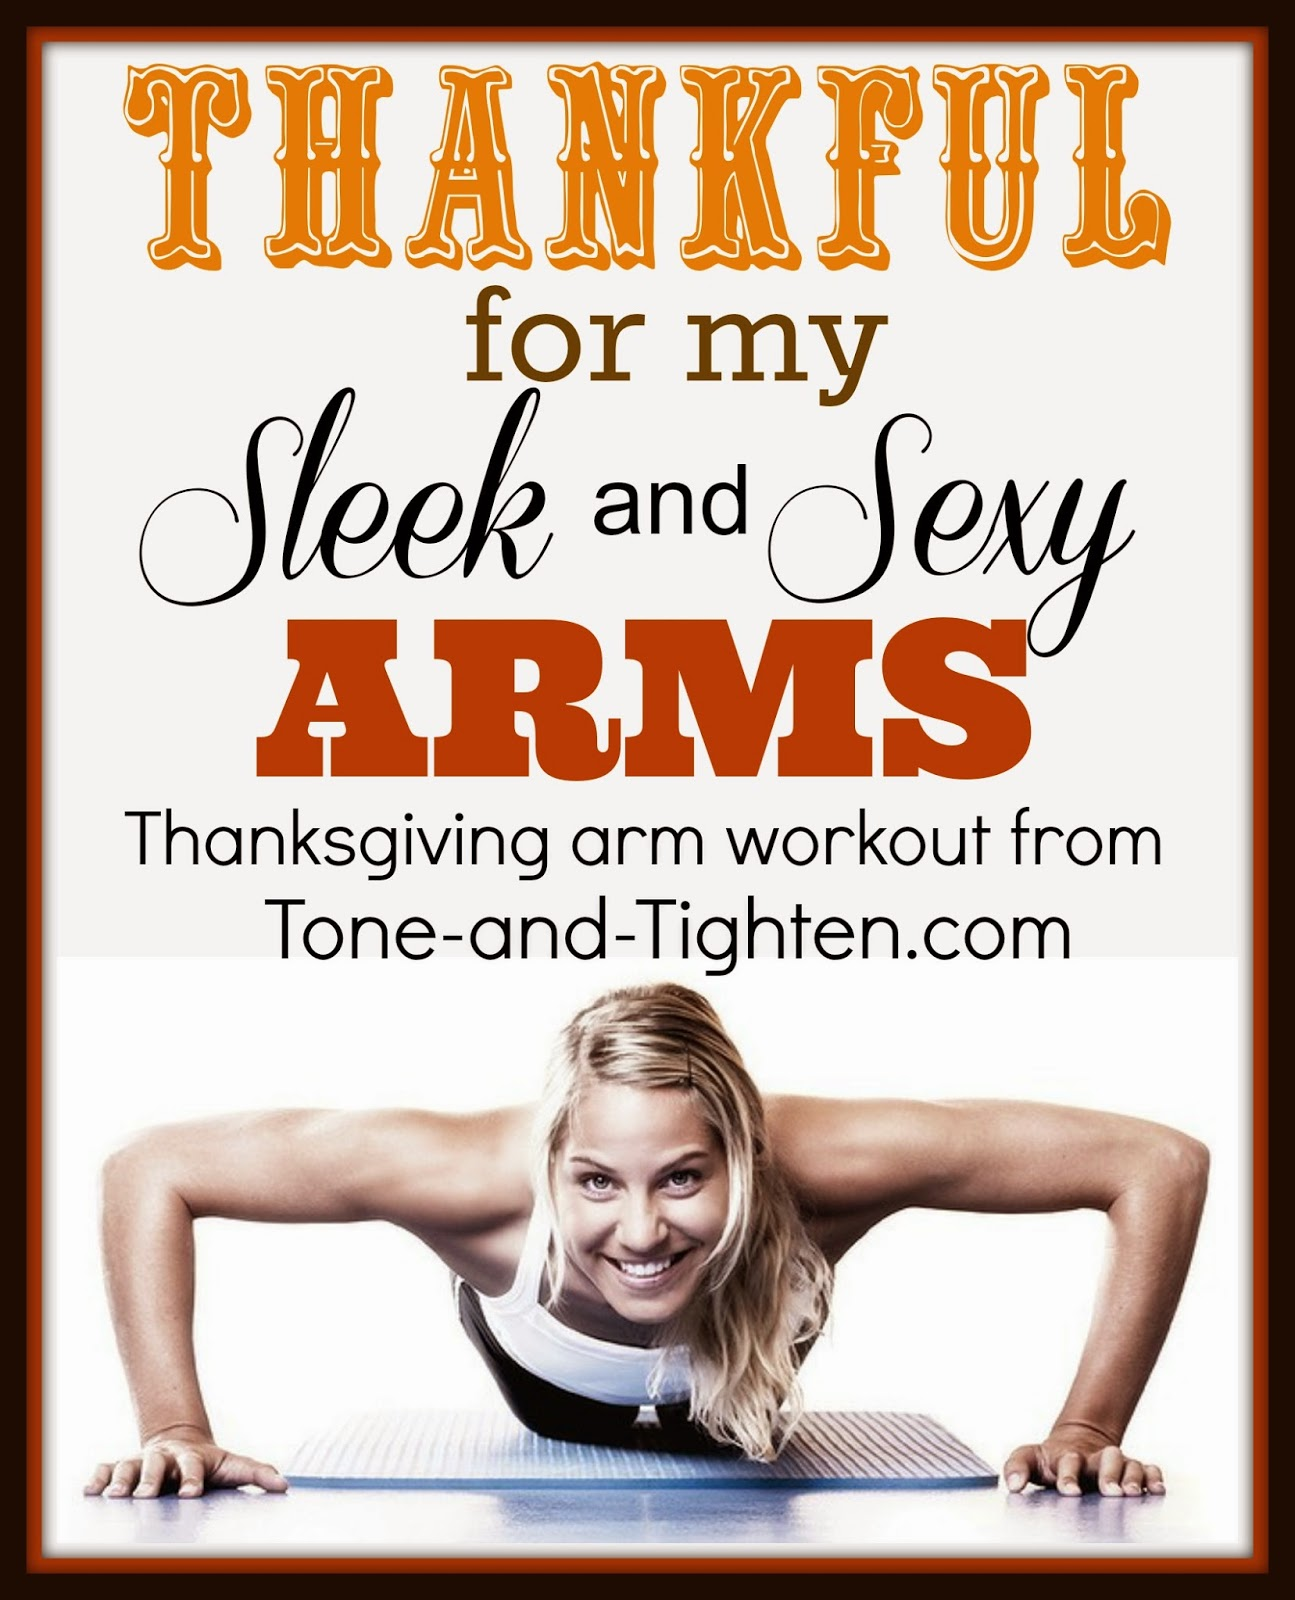 http://tone-and-tighten.com/2013/11/thankful-for-my-series-sleek-and-sexy-arms.html